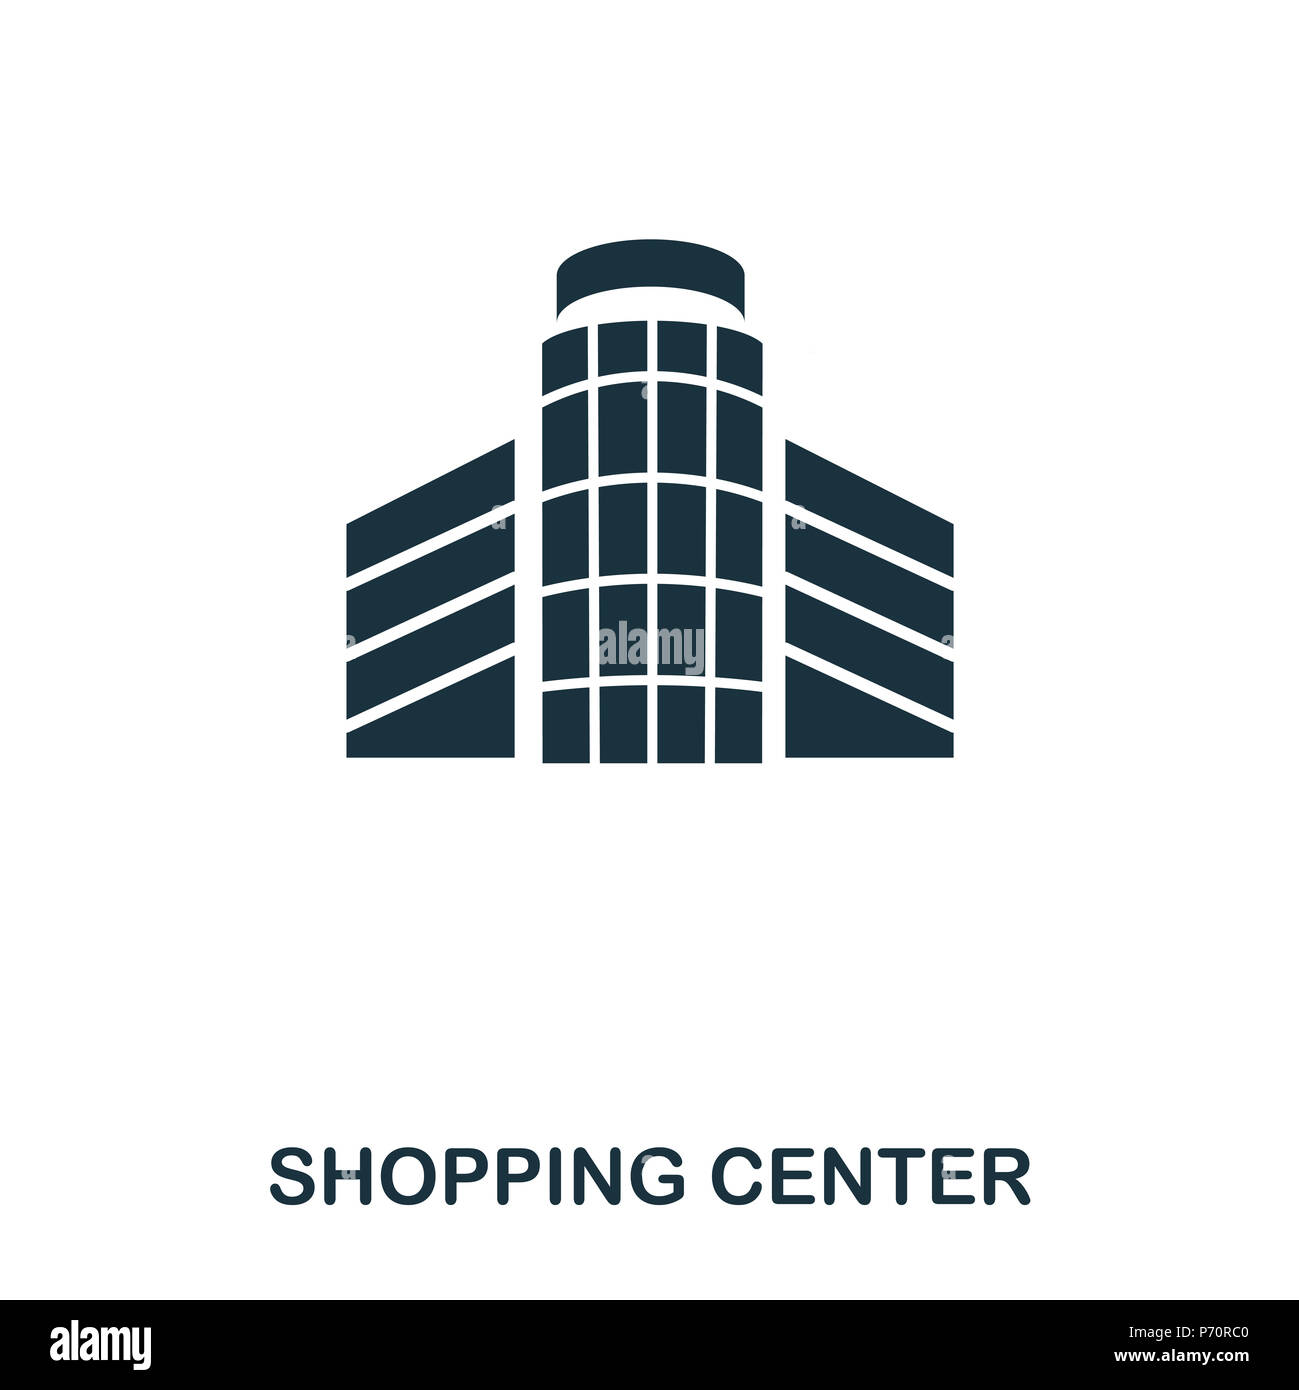 Shopping Center icon. Line style icon design. UI. Illustration of shopping center icon. Pictogram isolated on white. Ready to use in web design, apps, - Stock Image